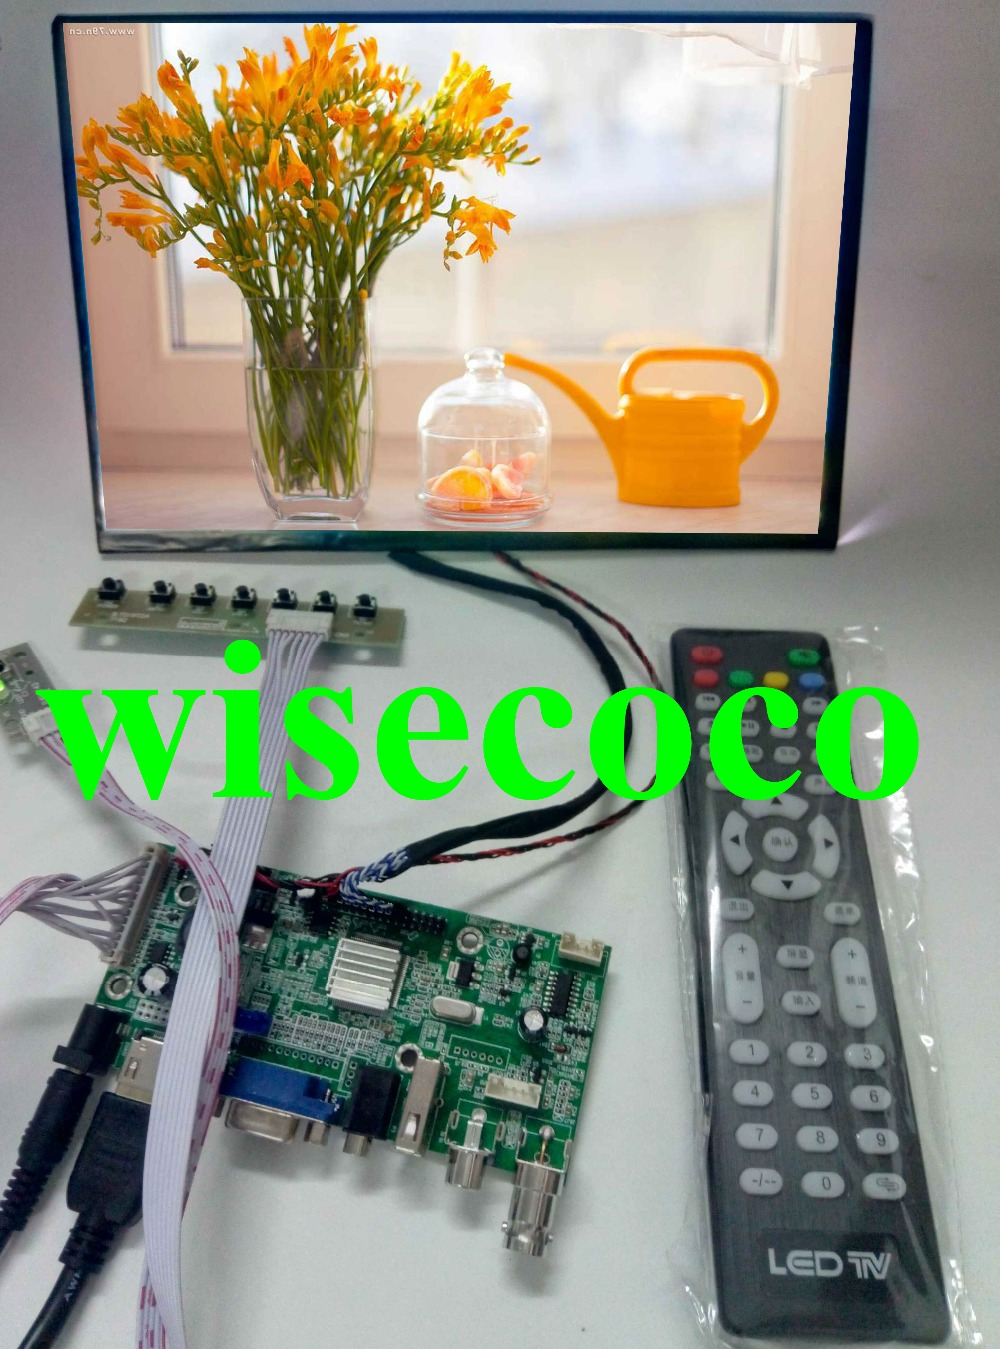 10.1 IPS for Raspberry Pi Monitor 1280*800 TFT N101ICG-L21 HD LCD Display Remote Driver Board HDMI 2AV VGA for Raspberry10.1 IPS for Raspberry Pi Monitor 1280*800 TFT N101ICG-L21 HD LCD Display Remote Driver Board HDMI 2AV VGA for Raspberry